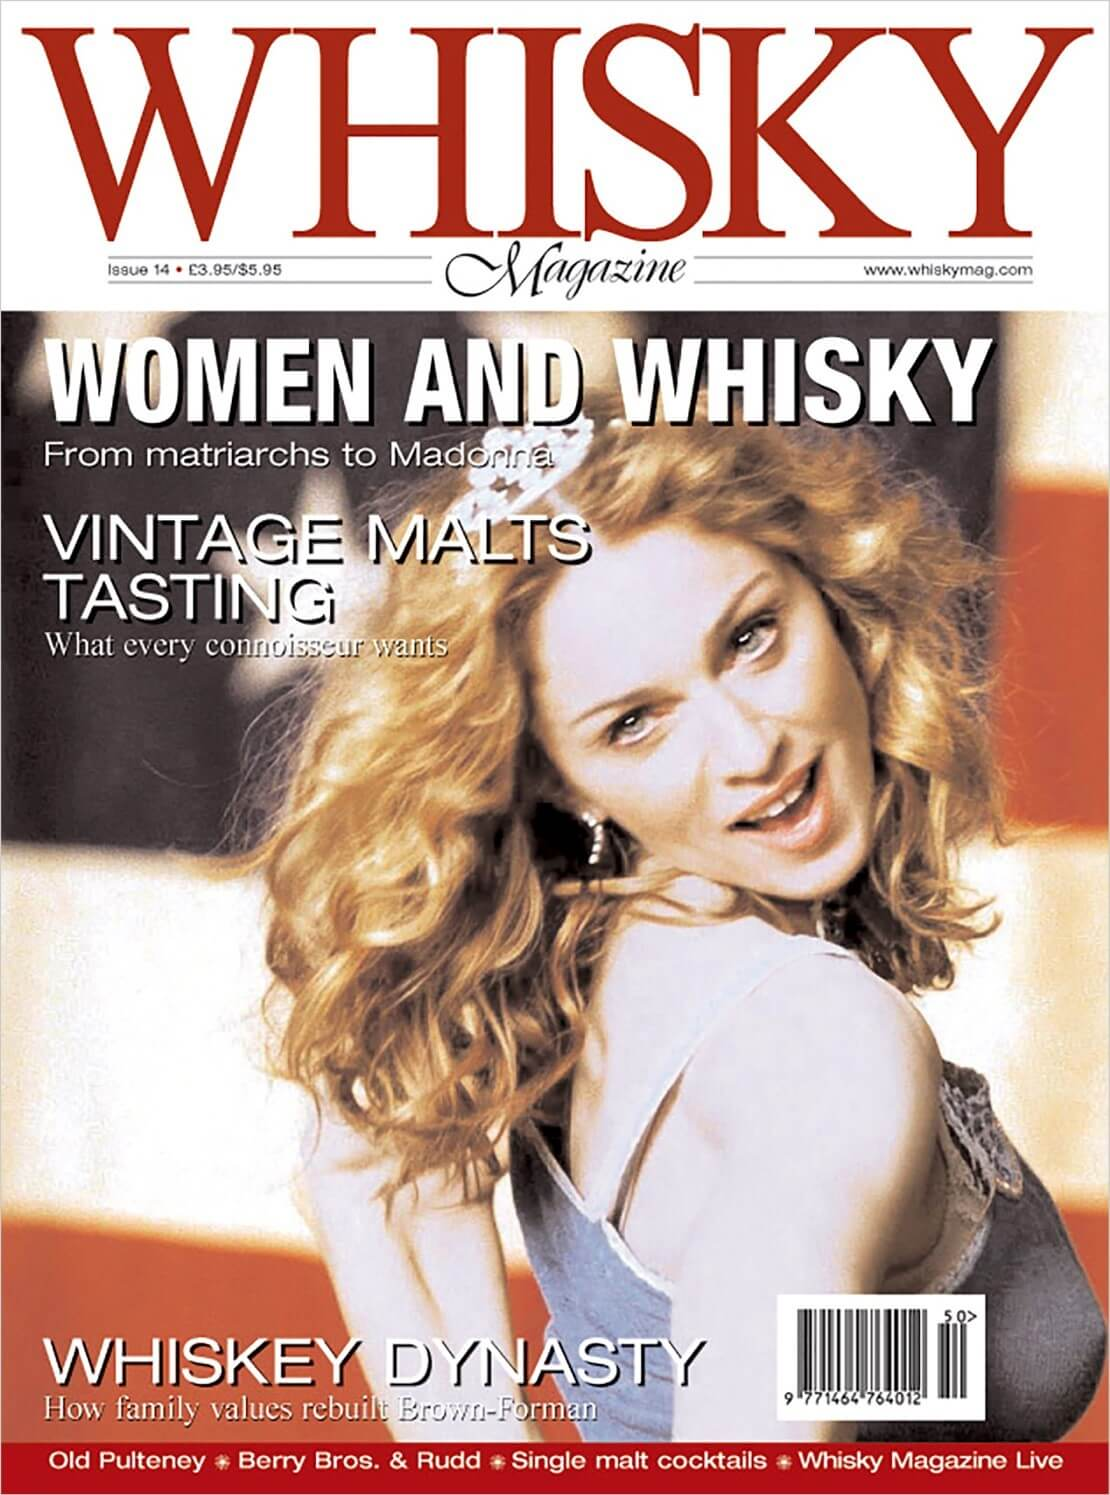 Women and Whisky Old Pulteney Vintage Malts Brown Forman